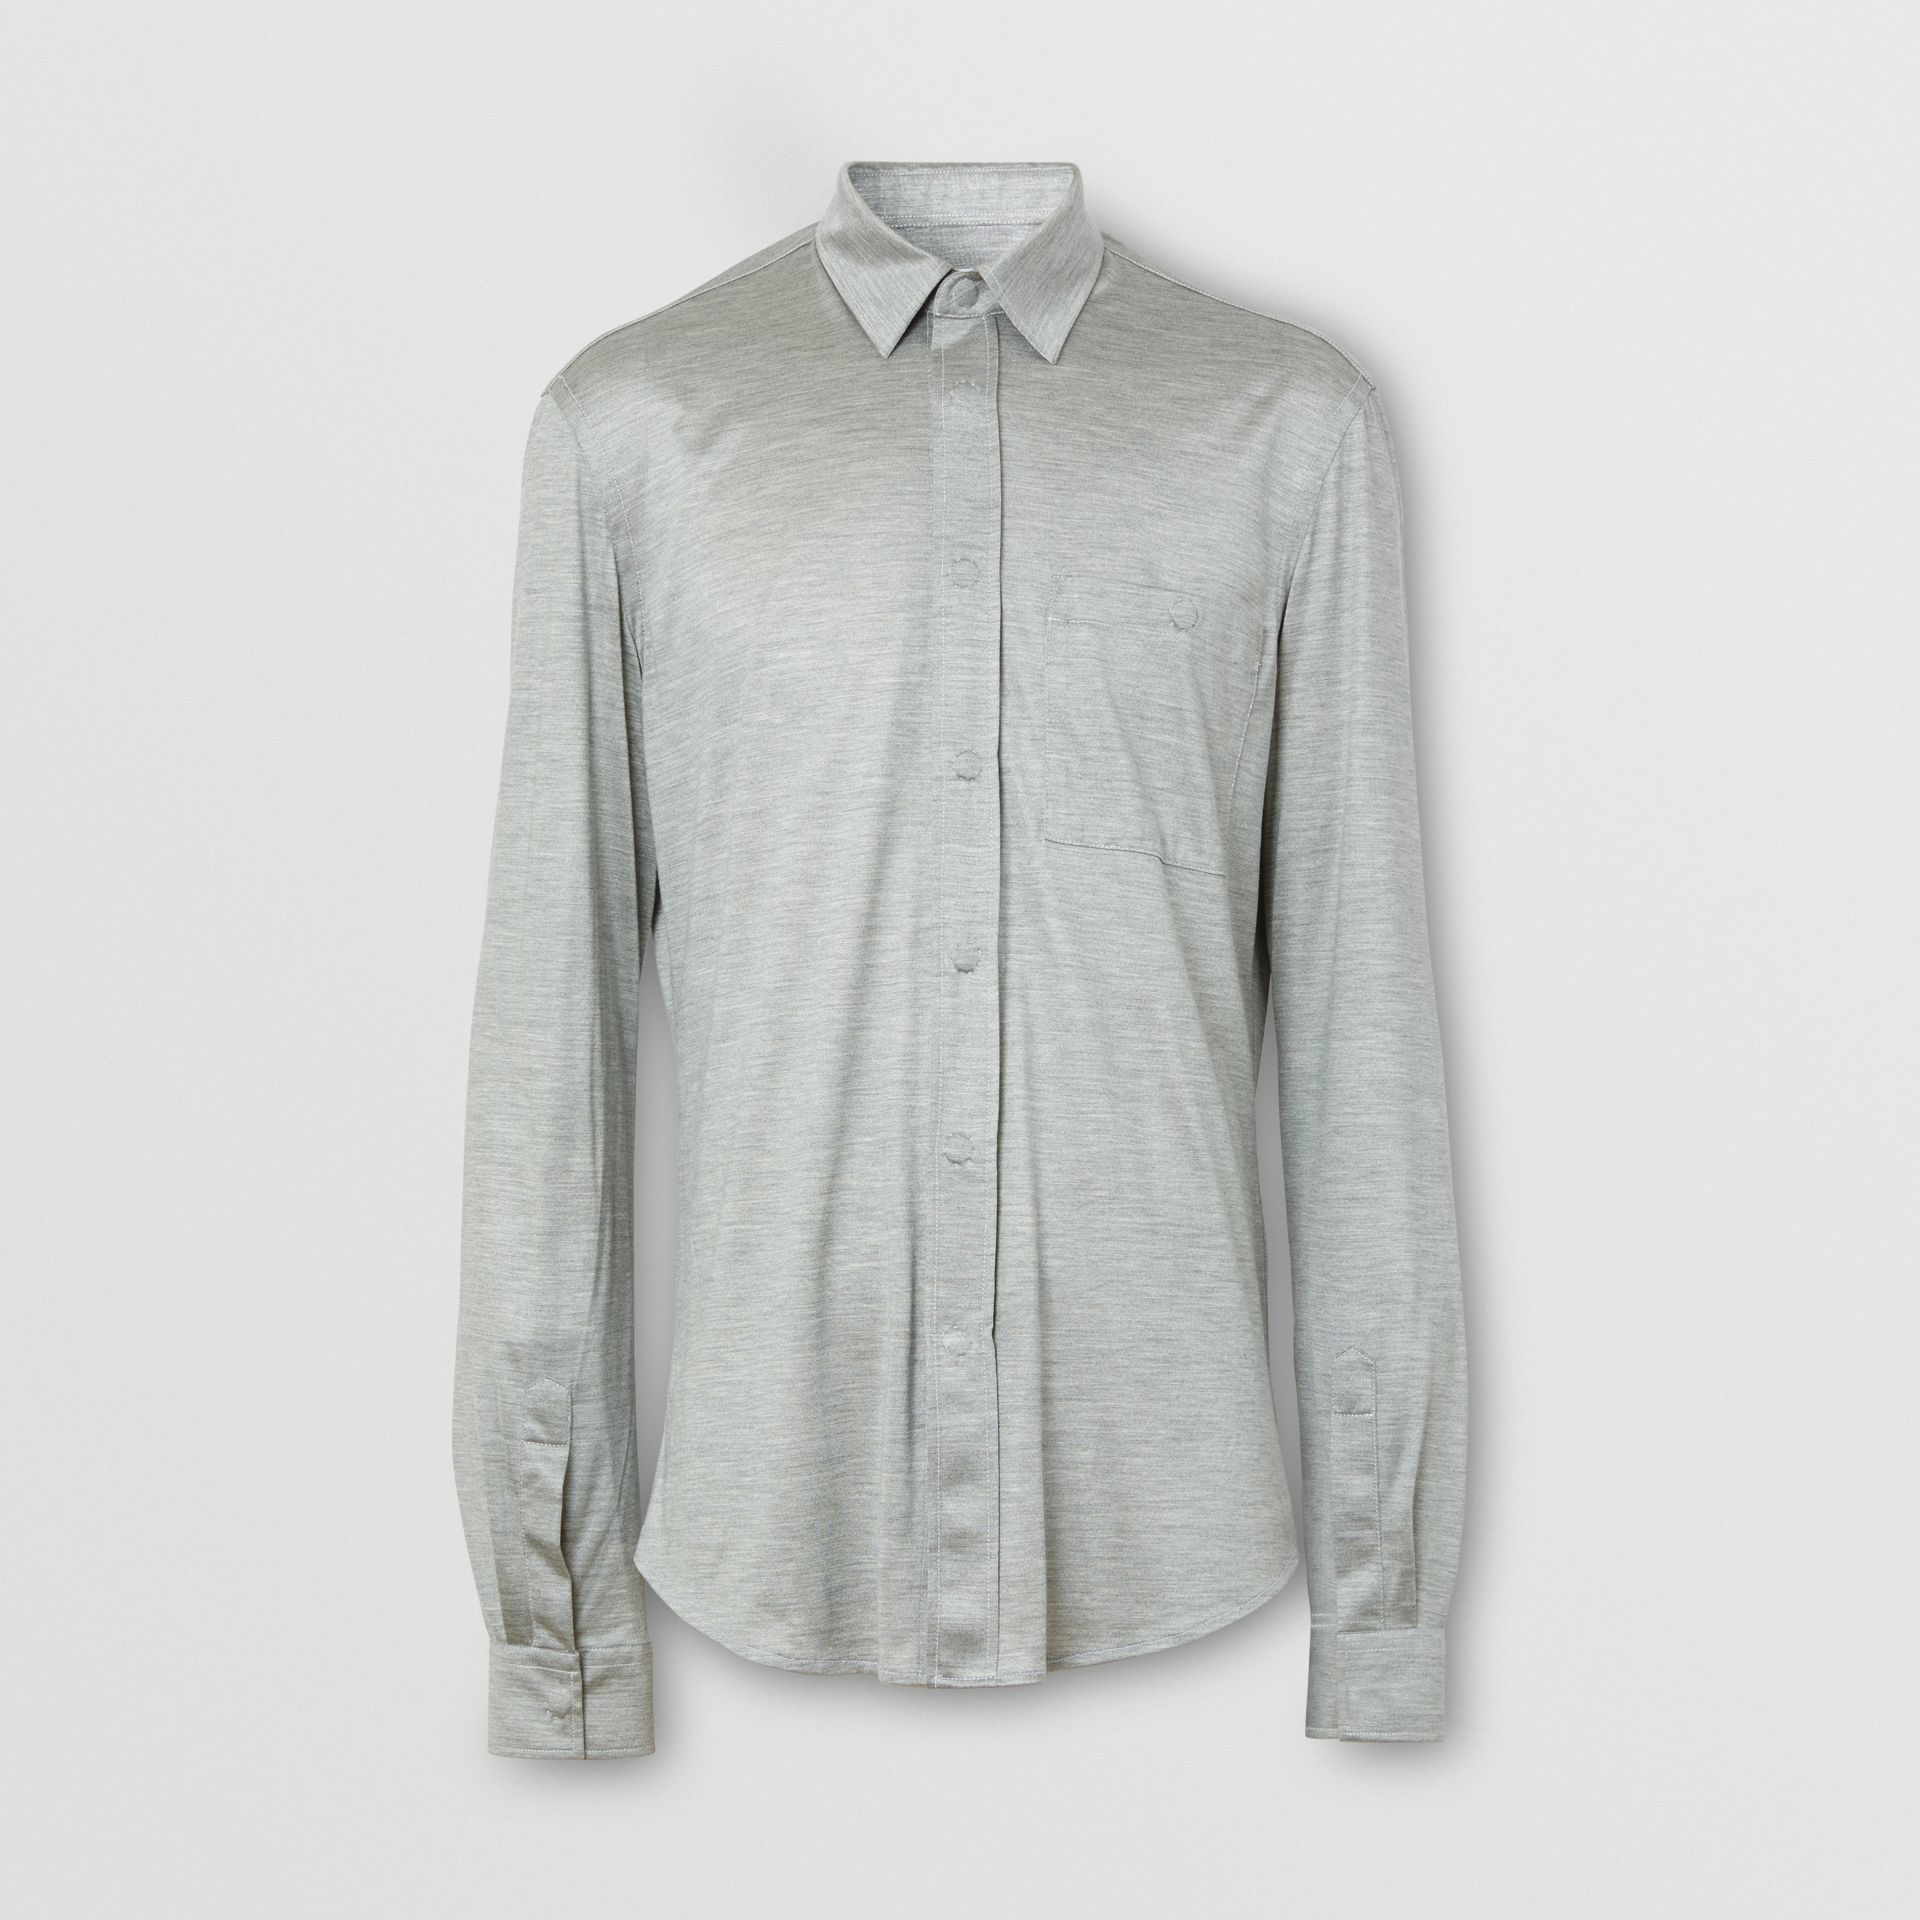 Classic Fit Silk Jersey Shirt in Light Pebble Grey | Burberry United States - gallery image 3